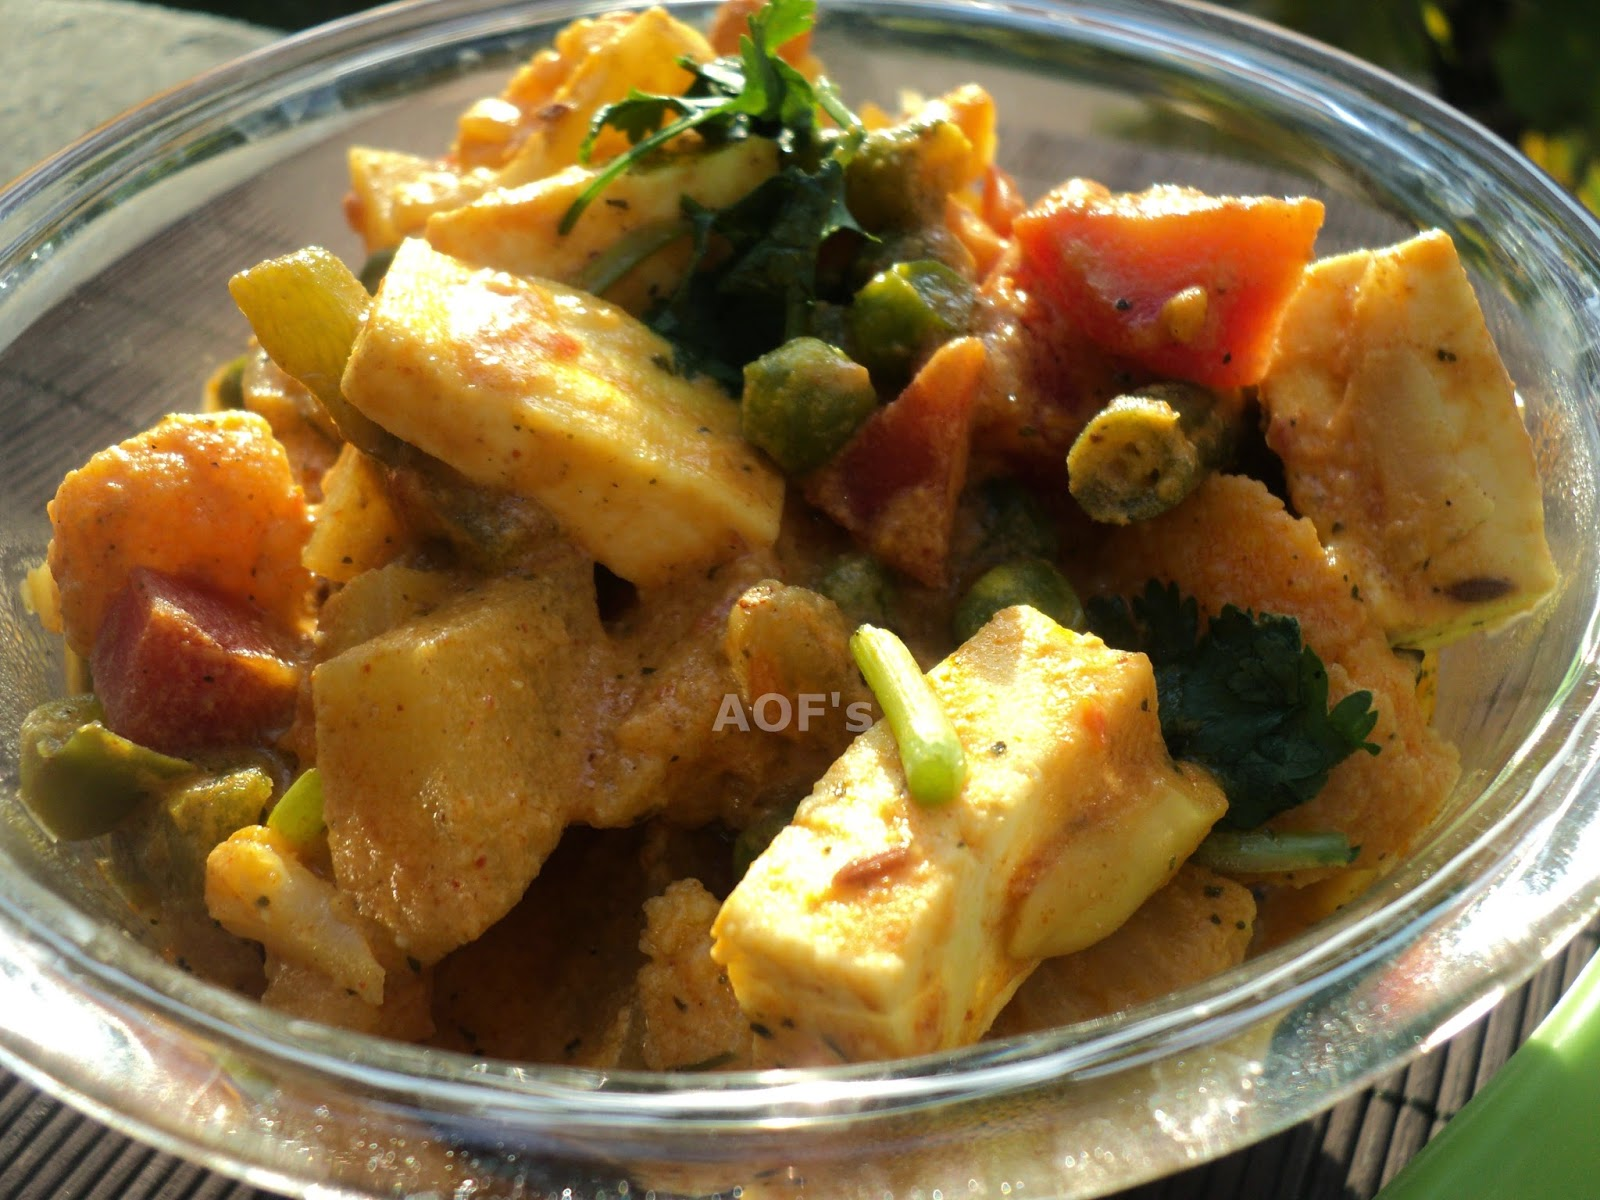 Oriyarasoi the cosmopolitan odias kitchen navratan korma oriyarasoi the cosmopolitan odias kitchen navratan korma without onion and garlic forumfinder Choice Image